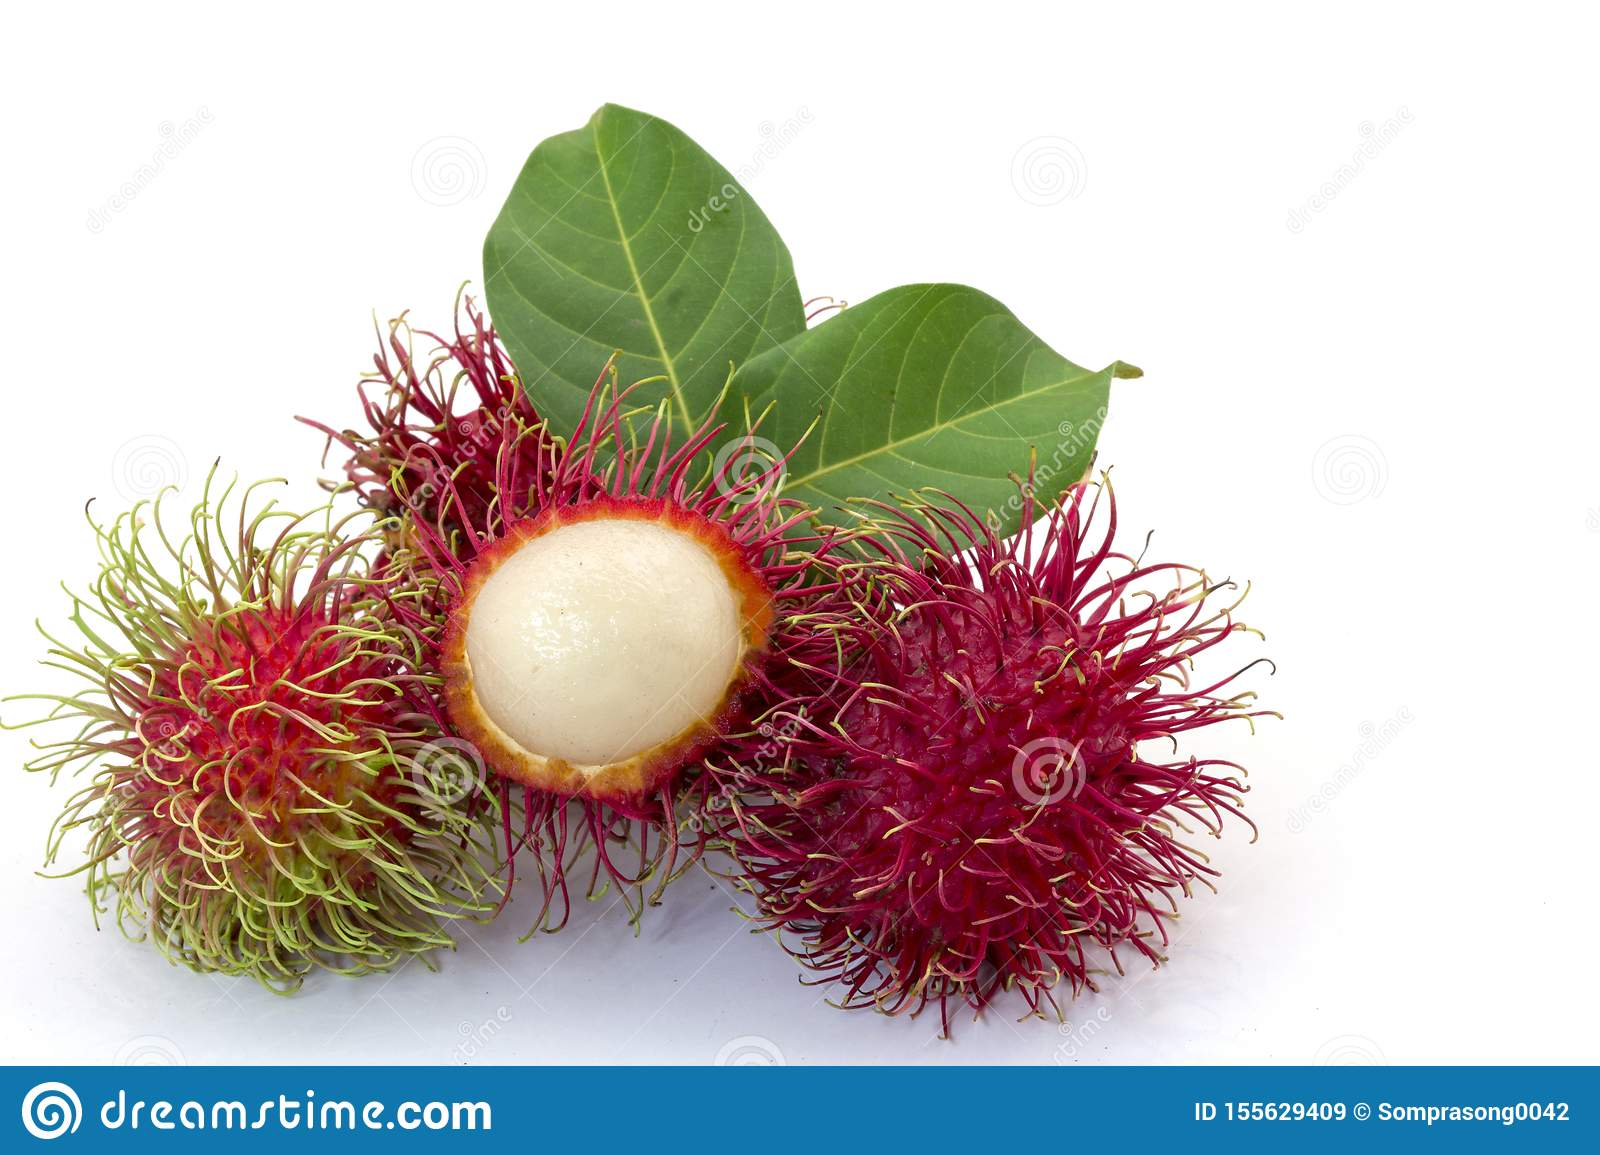 Fresh Rambutan with green leaves isolated on white background